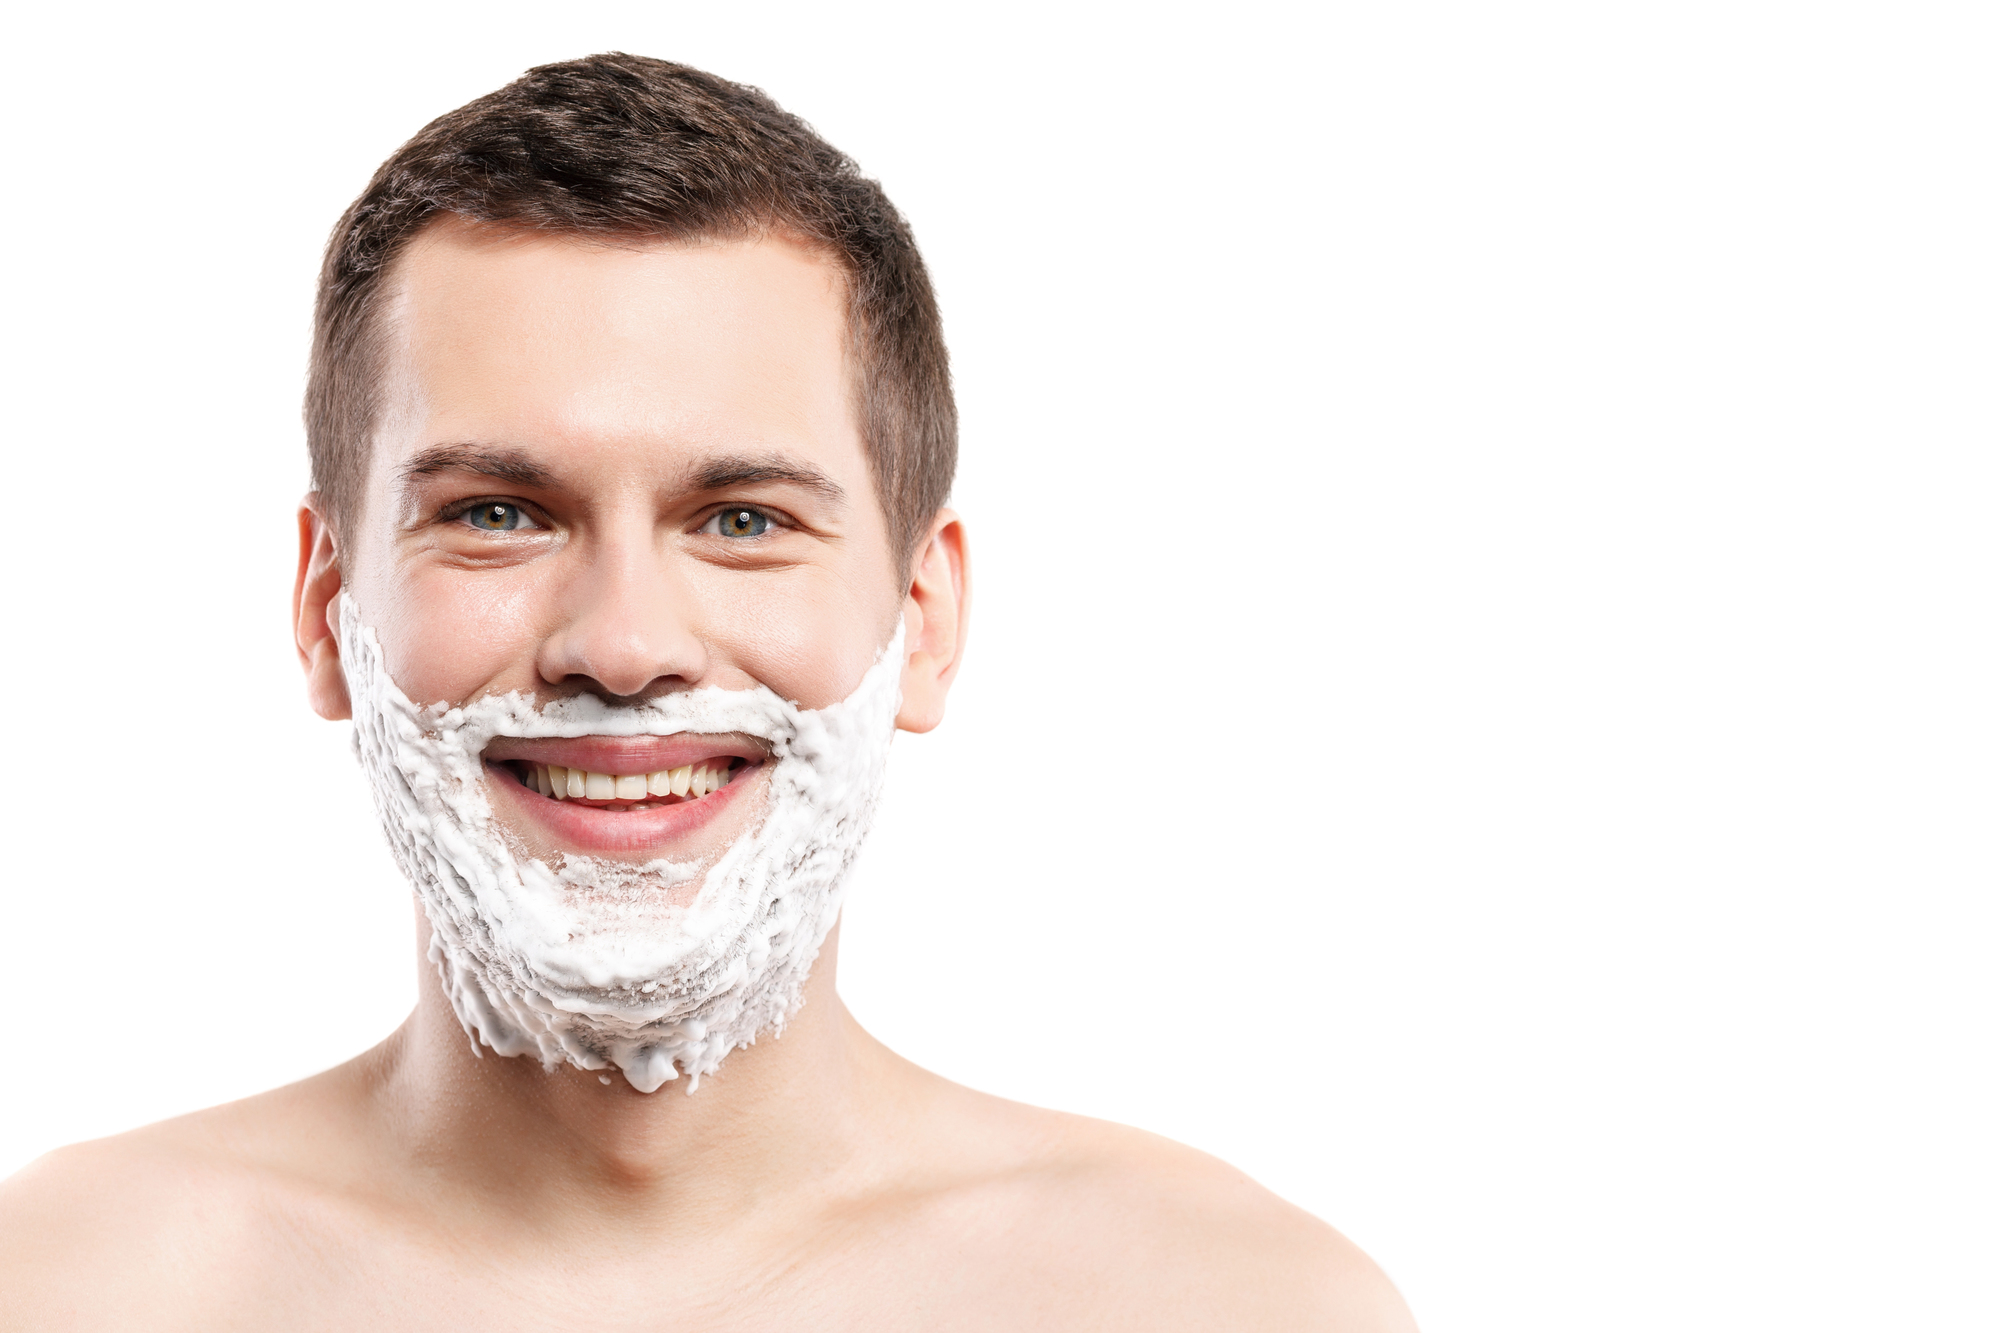 Portrait of happy young man with shaving cream on his chin. He is standing and smiling. Isolated and copy space in right side